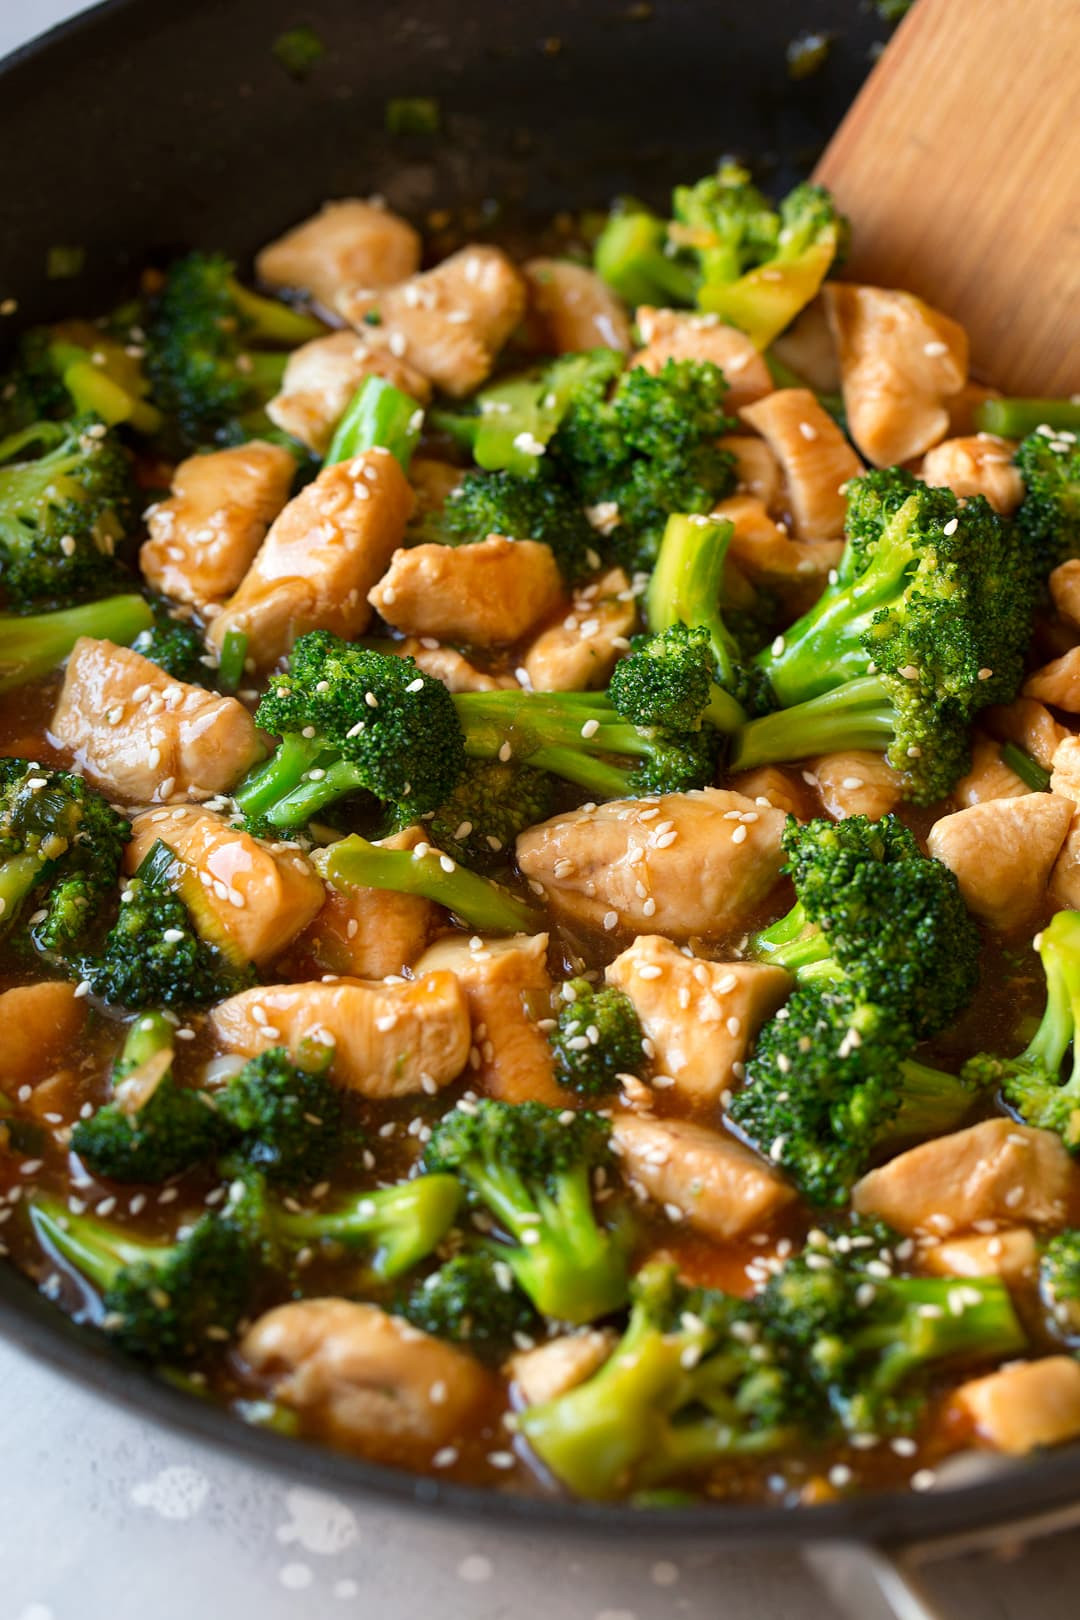 Easy Chicken And Broccoli Recipes  Chicken and Broccoli Stir Fry Cooking Classy